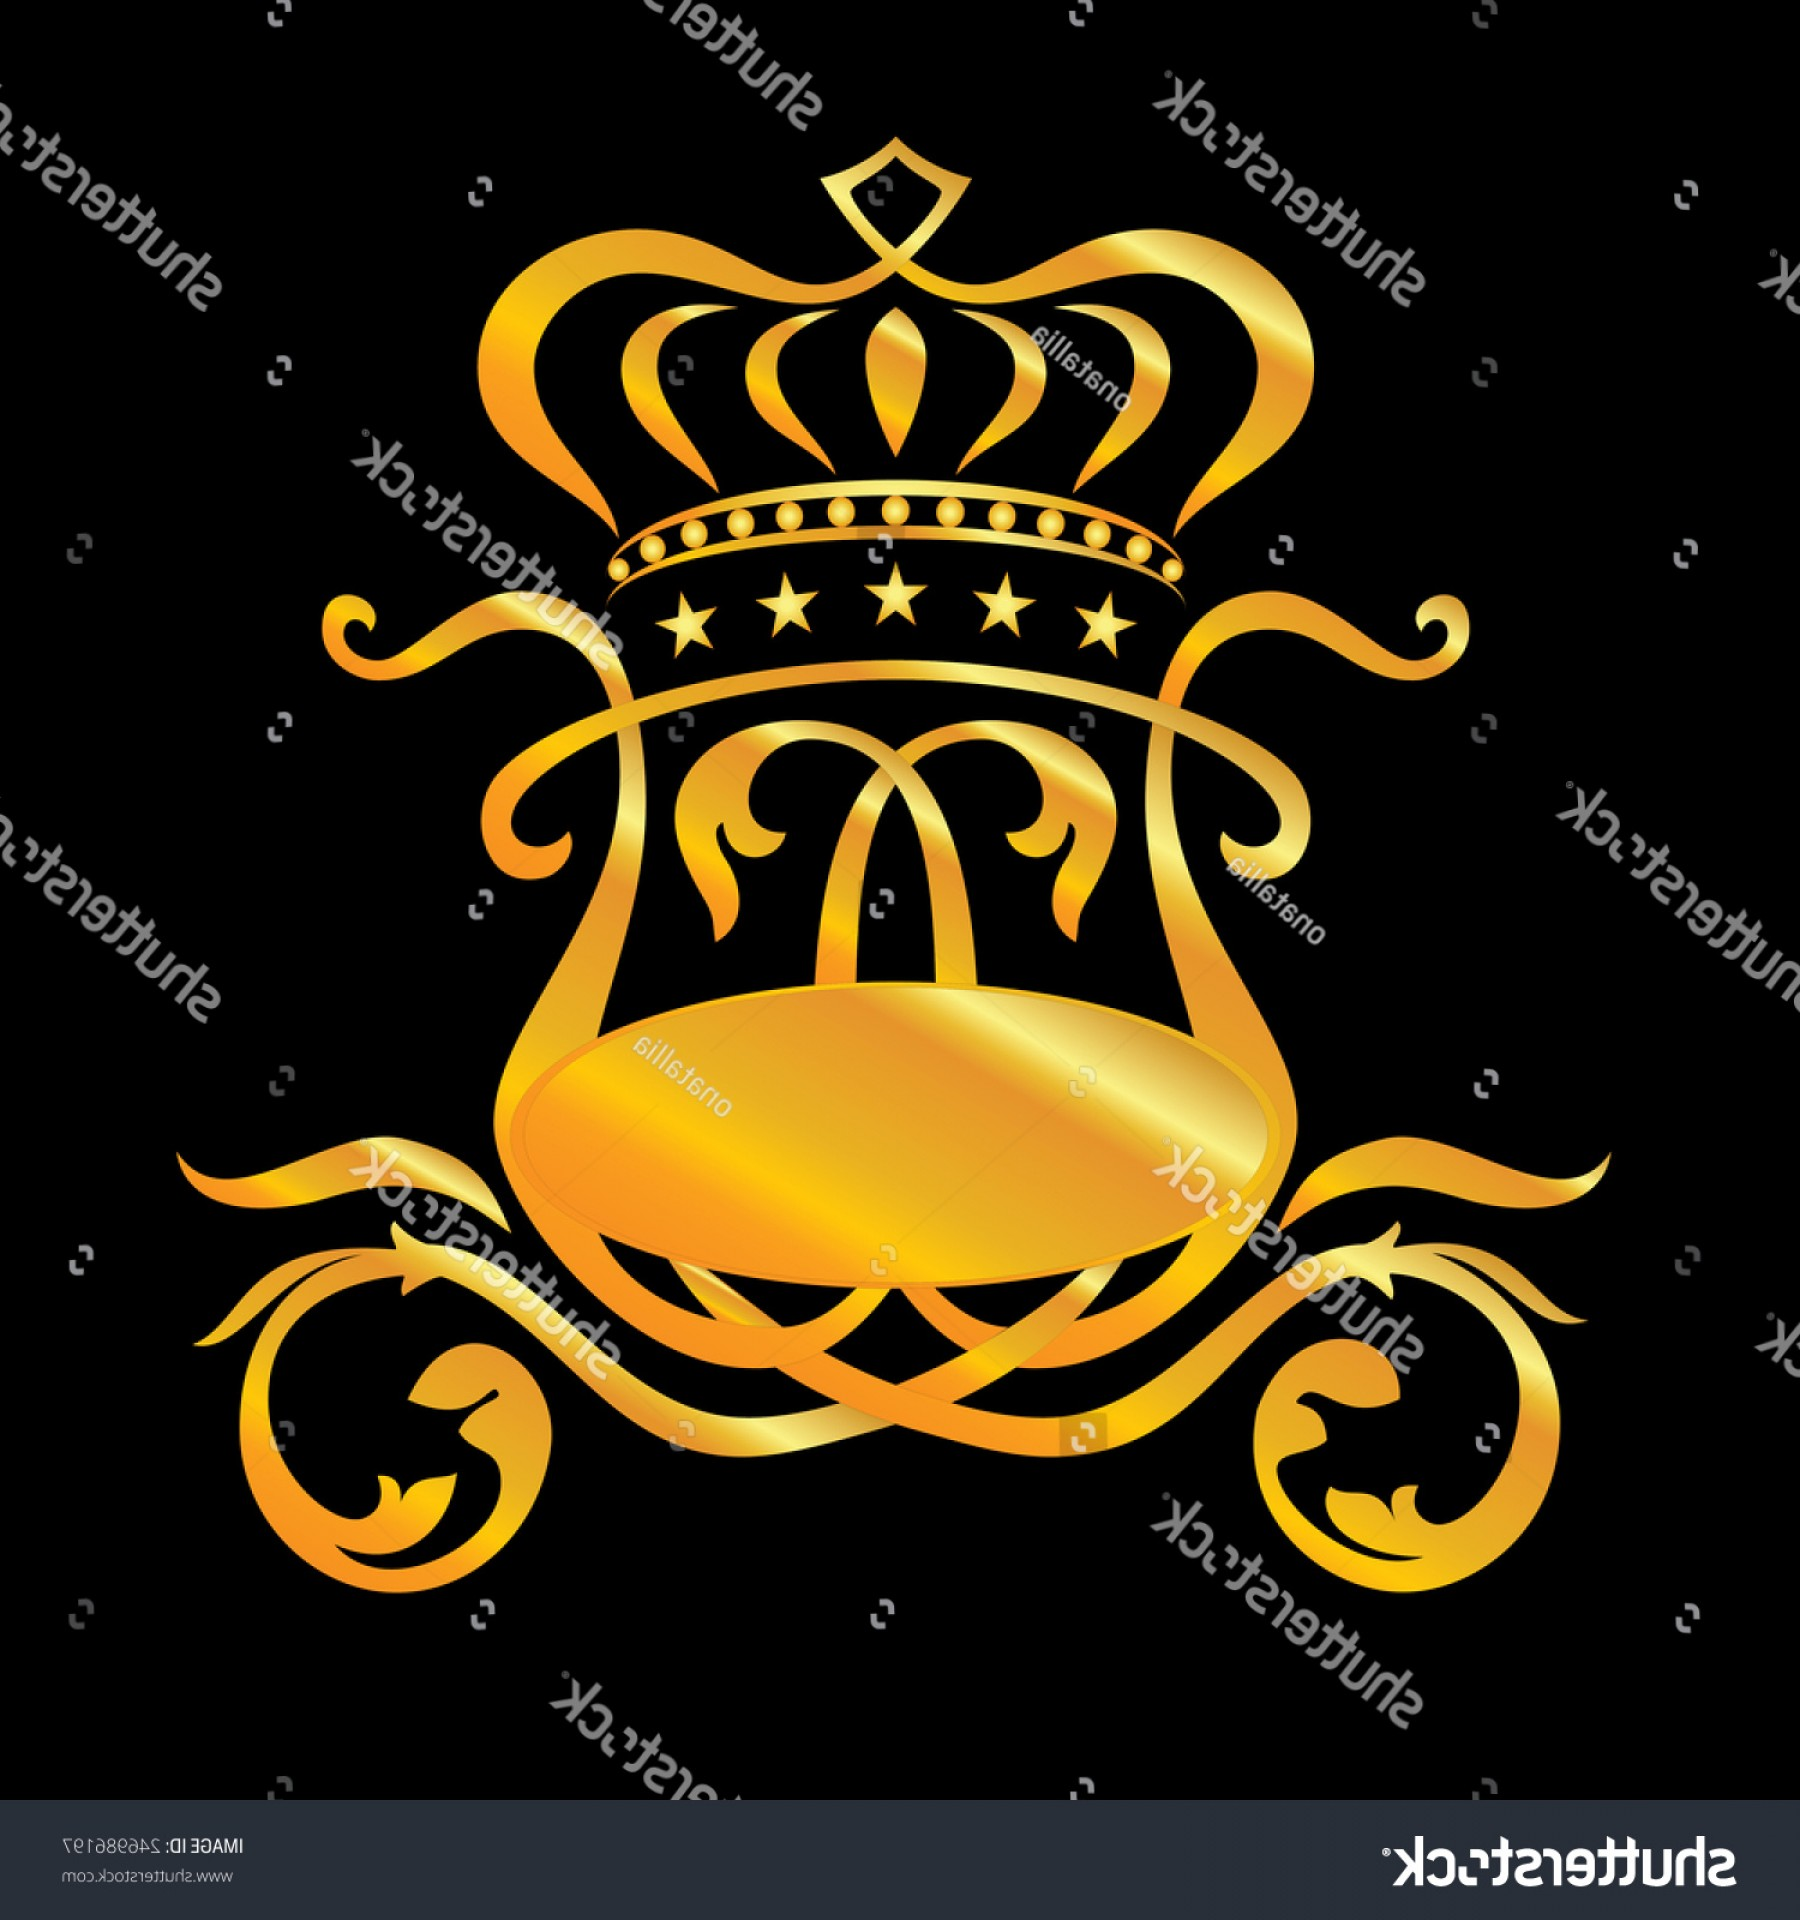 Coach Gold Logo Vector: Stylized Vector Golden Coach Crown Stars